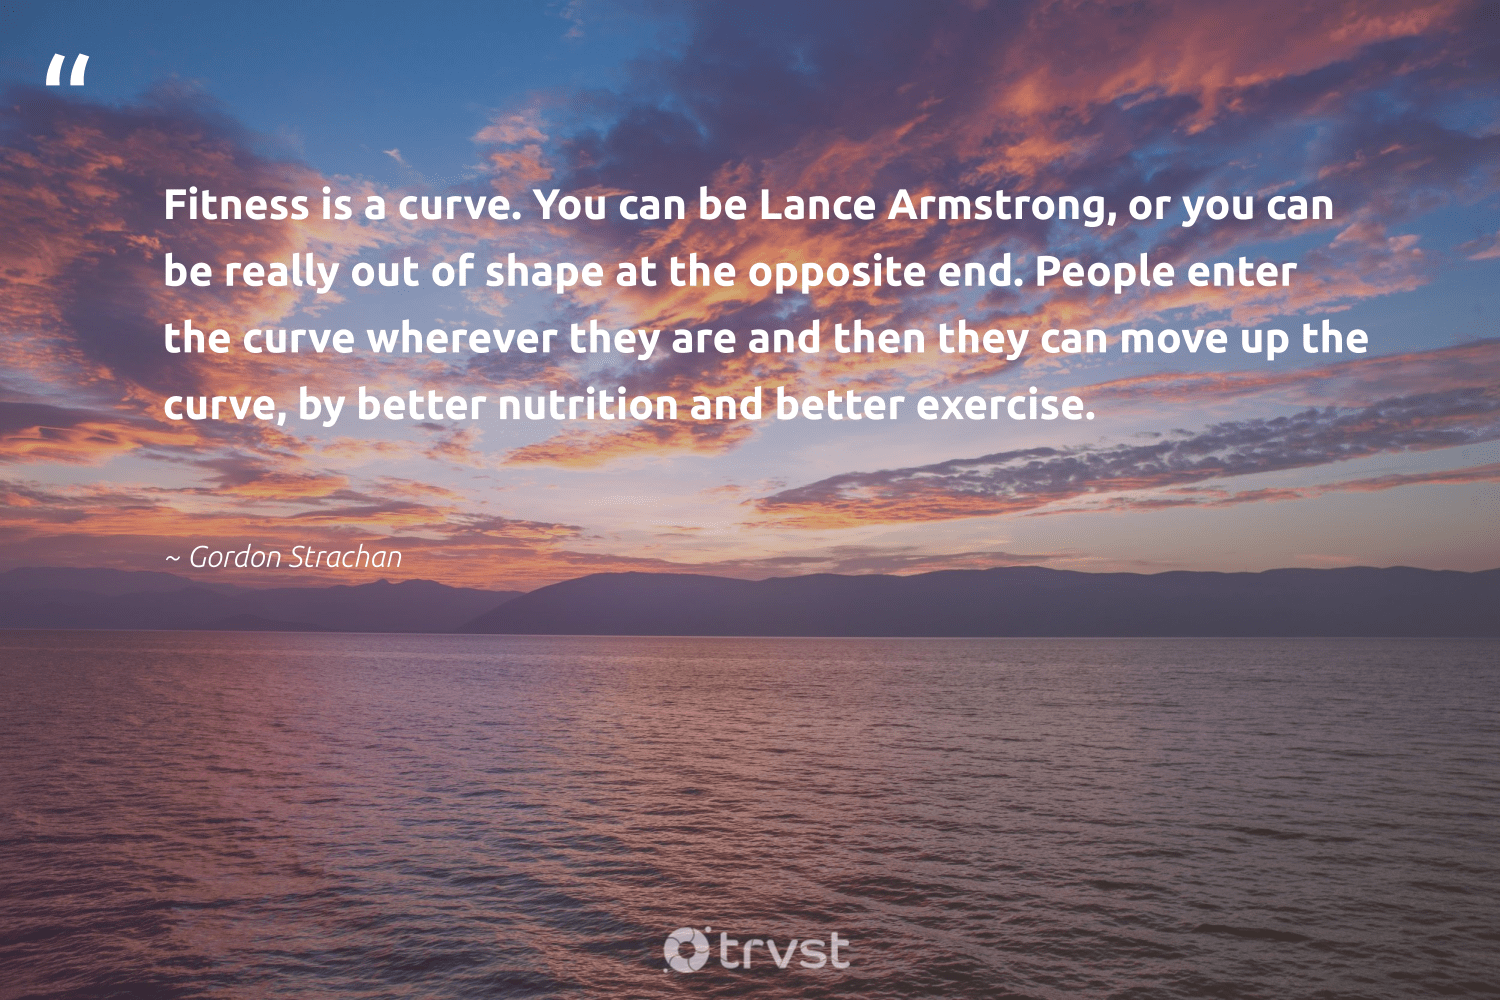 """Fitness is a curve. You can be Lance Armstrong, or you can be really out of shape at the opposite end. People enter the curve wherever they are and then they can move up the curve, by better nutrition and better exercise.""  - Gordon Strachan #trvst #quotes #fitness #nutrition #exercise #cardio #healthylifestyle #changemakers #mindset #bethechange #fitnessgoals #eatclean"